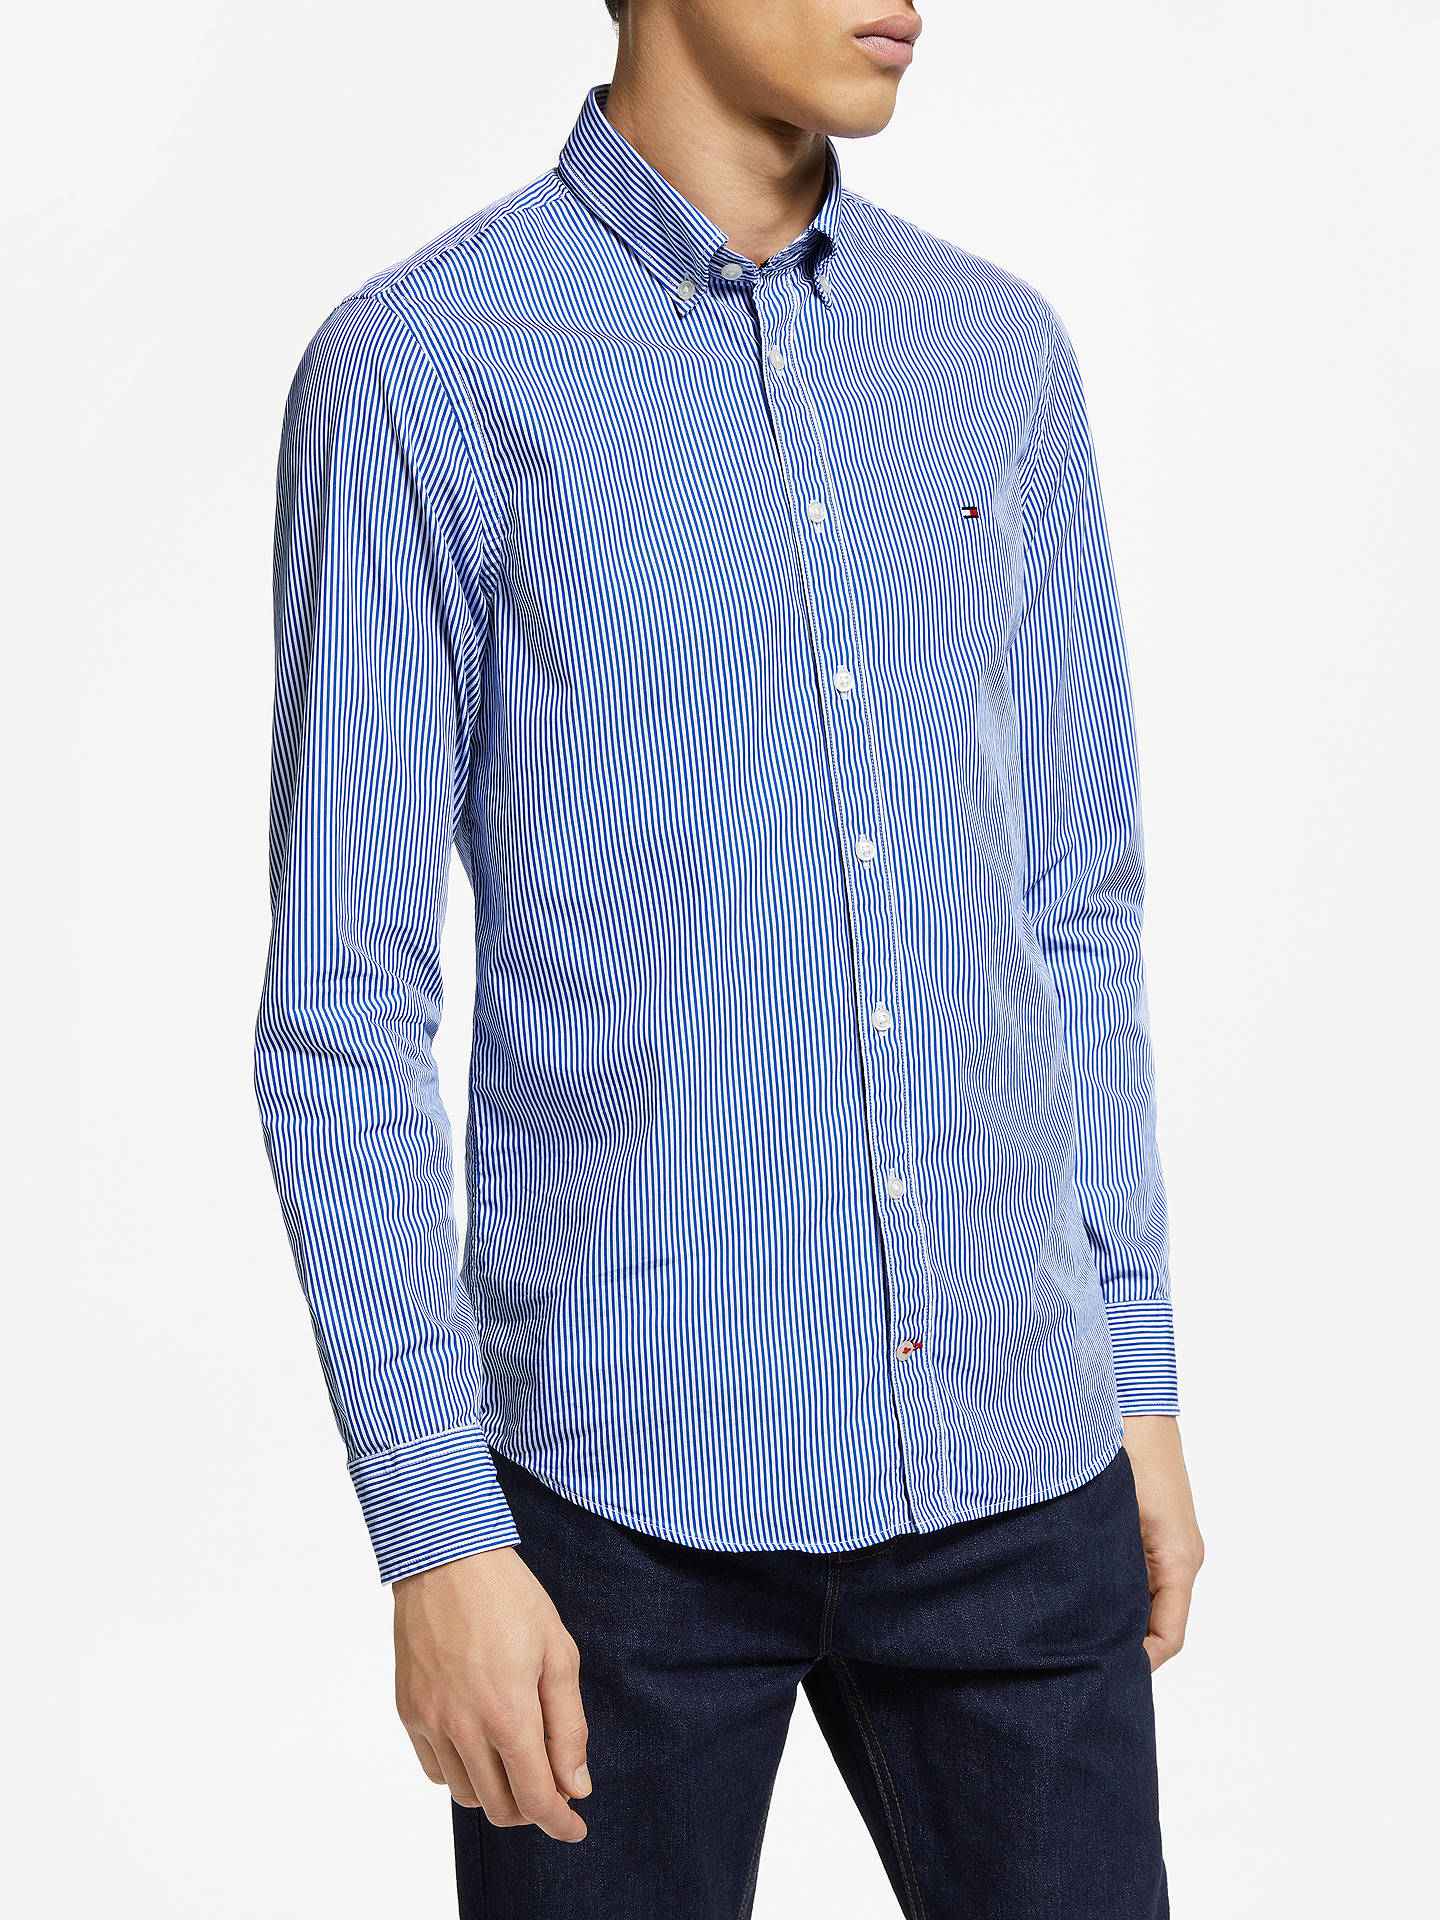 be90b43dc Buy Tommy Hilfiger Slim Fit Classic Stripe Shirt, Blue Lolite/Bright White,  S ...